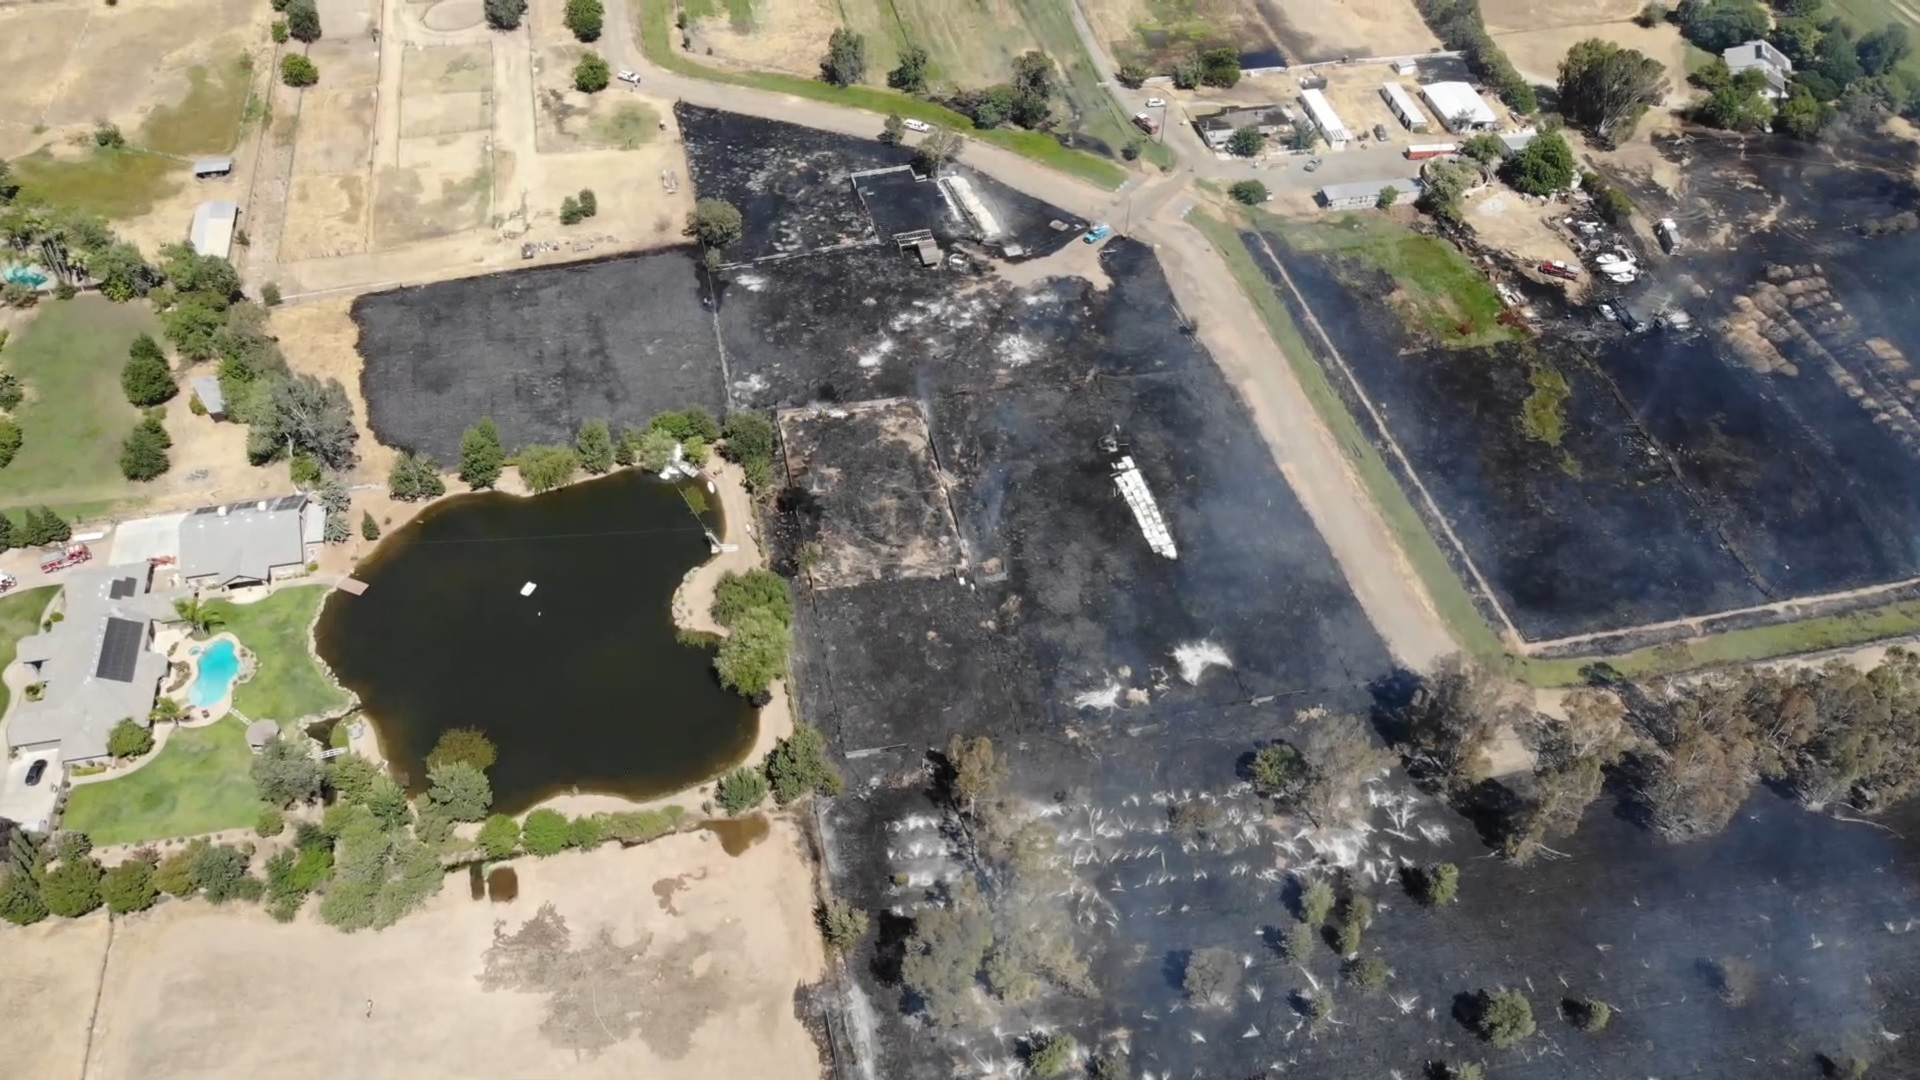 Barn and vacant mobile home destroyed in a large grass fire outside Clovis